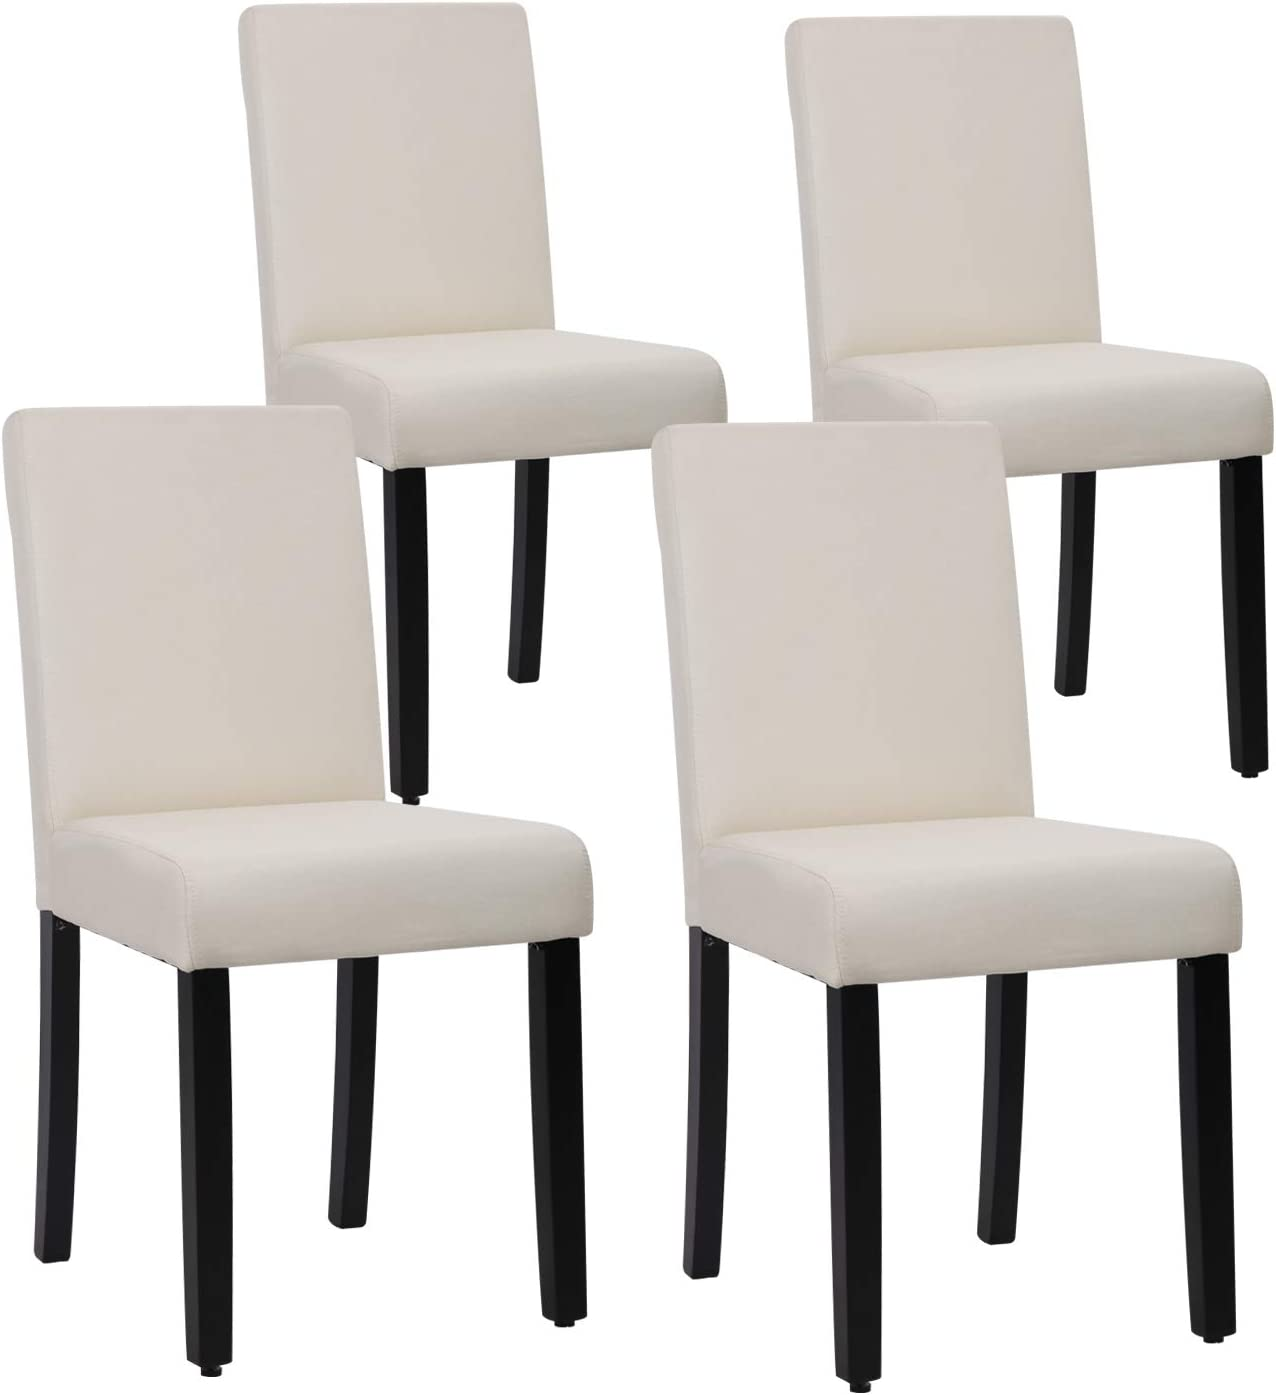 Dining Chairs Set of 4 Elegant Design Modern Fabric Upholstered Dining Chairs